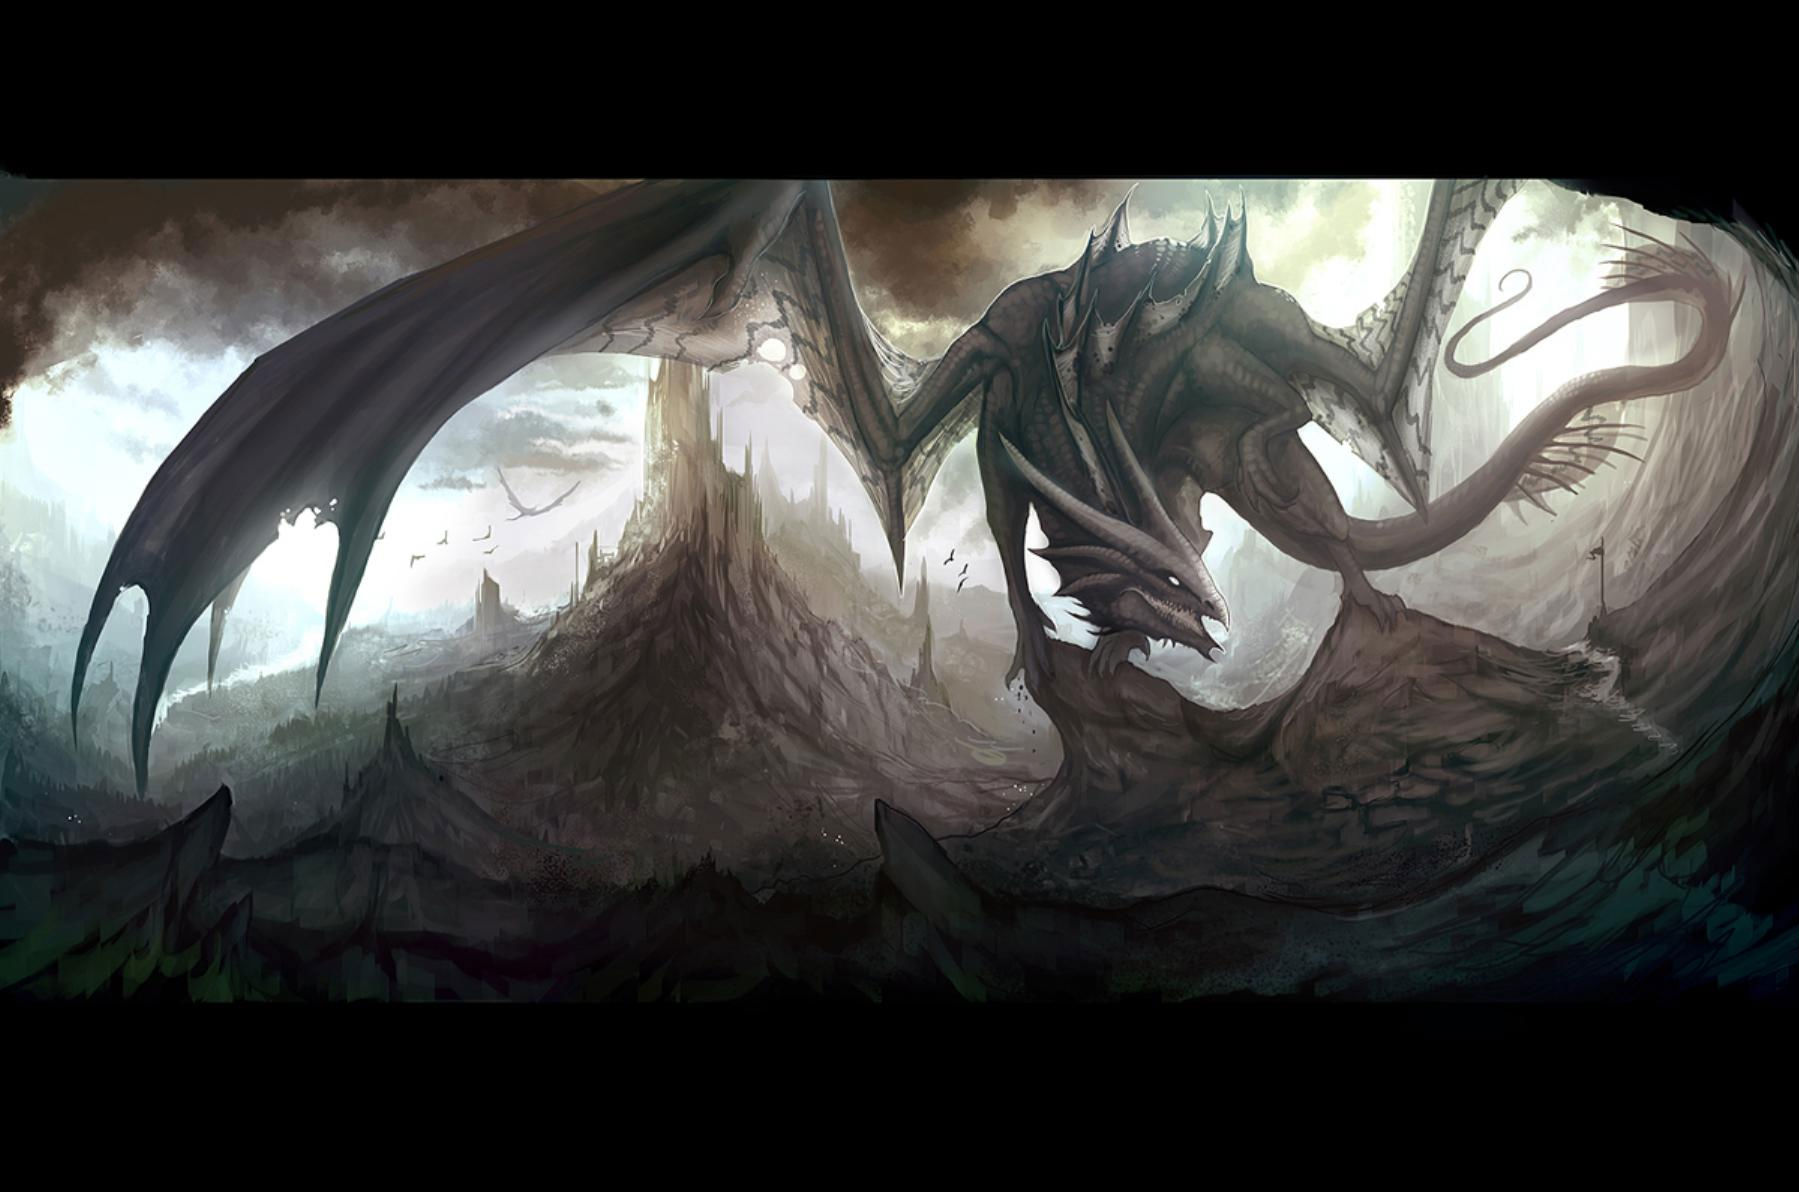 Dragons images Dragon rage HD wallpaper and background photos ... Dragon